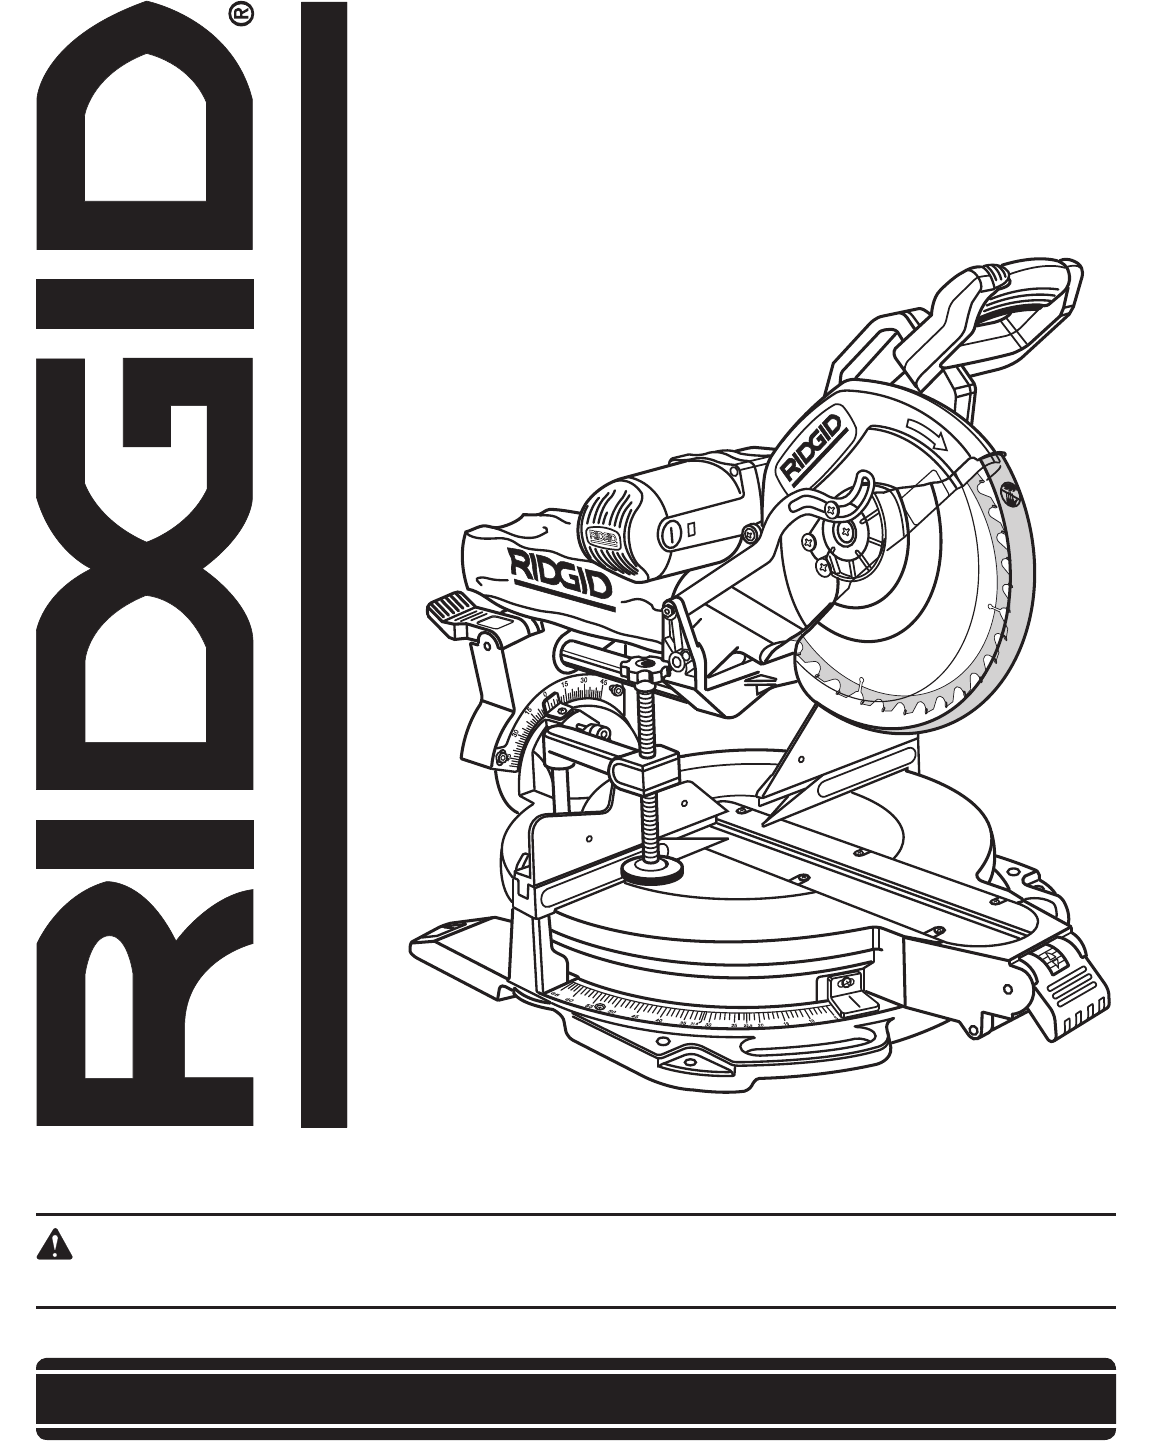 Ridgid switch wiring diagram honda audio wiring wiring 120v outlet ridgid saw ms1290lz1 user guide manualsonlinecom dc368cc9 2d66 4f2b ba18 841c1fe8e5f6 bg1 ms1290lz1html ridgid switch wiring diagram greentooth Image collections